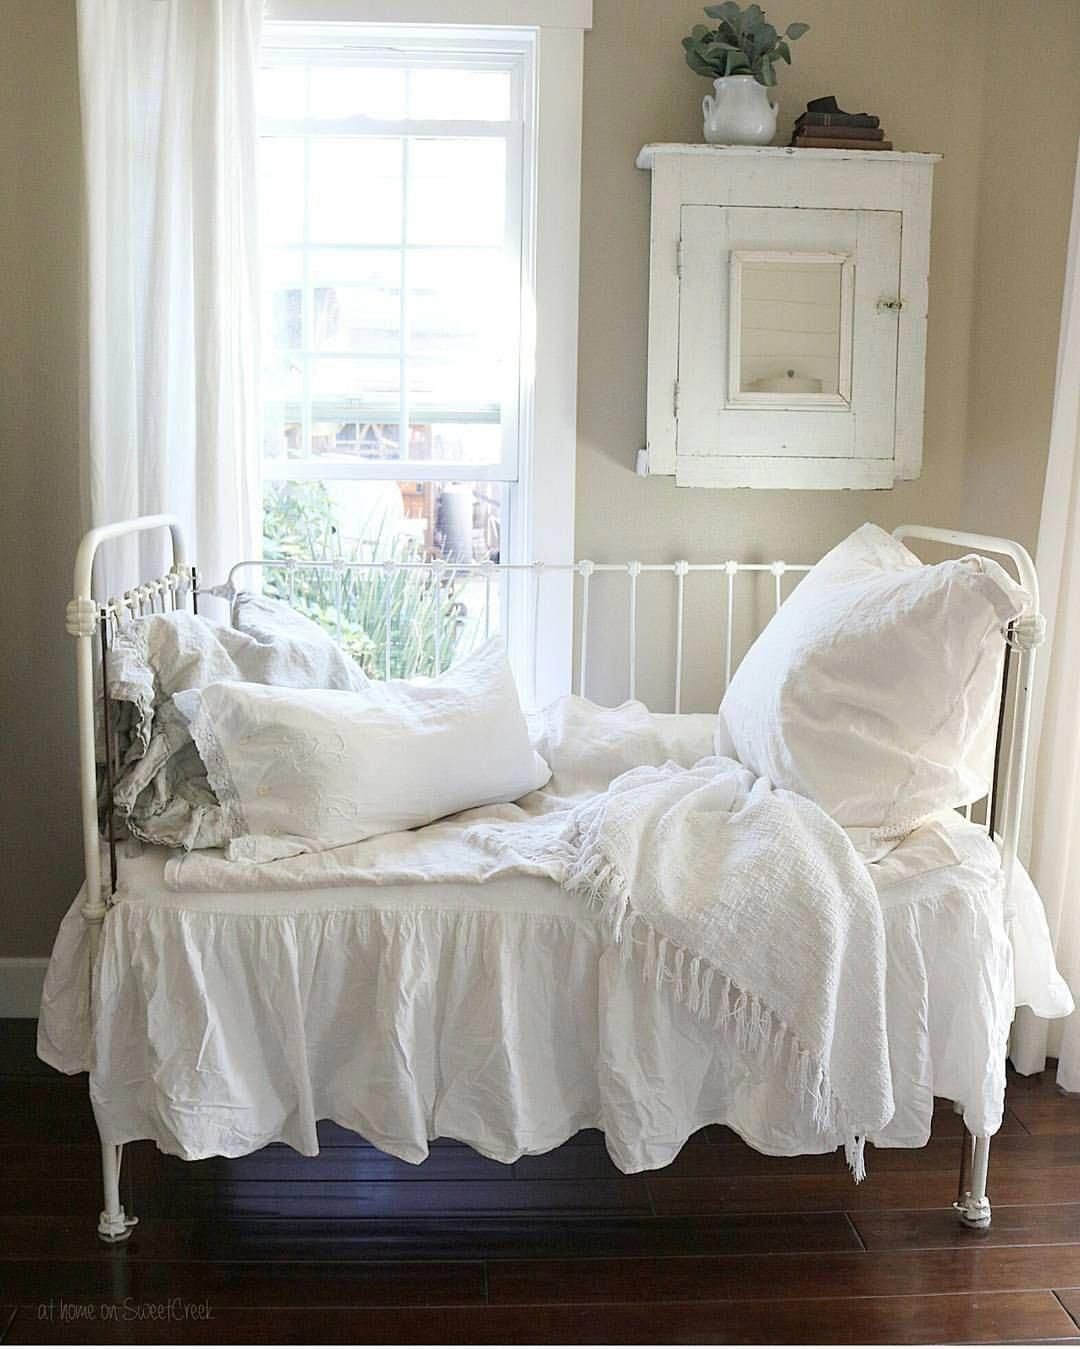 Antique crib shabby chic cottage farmhouse at home on